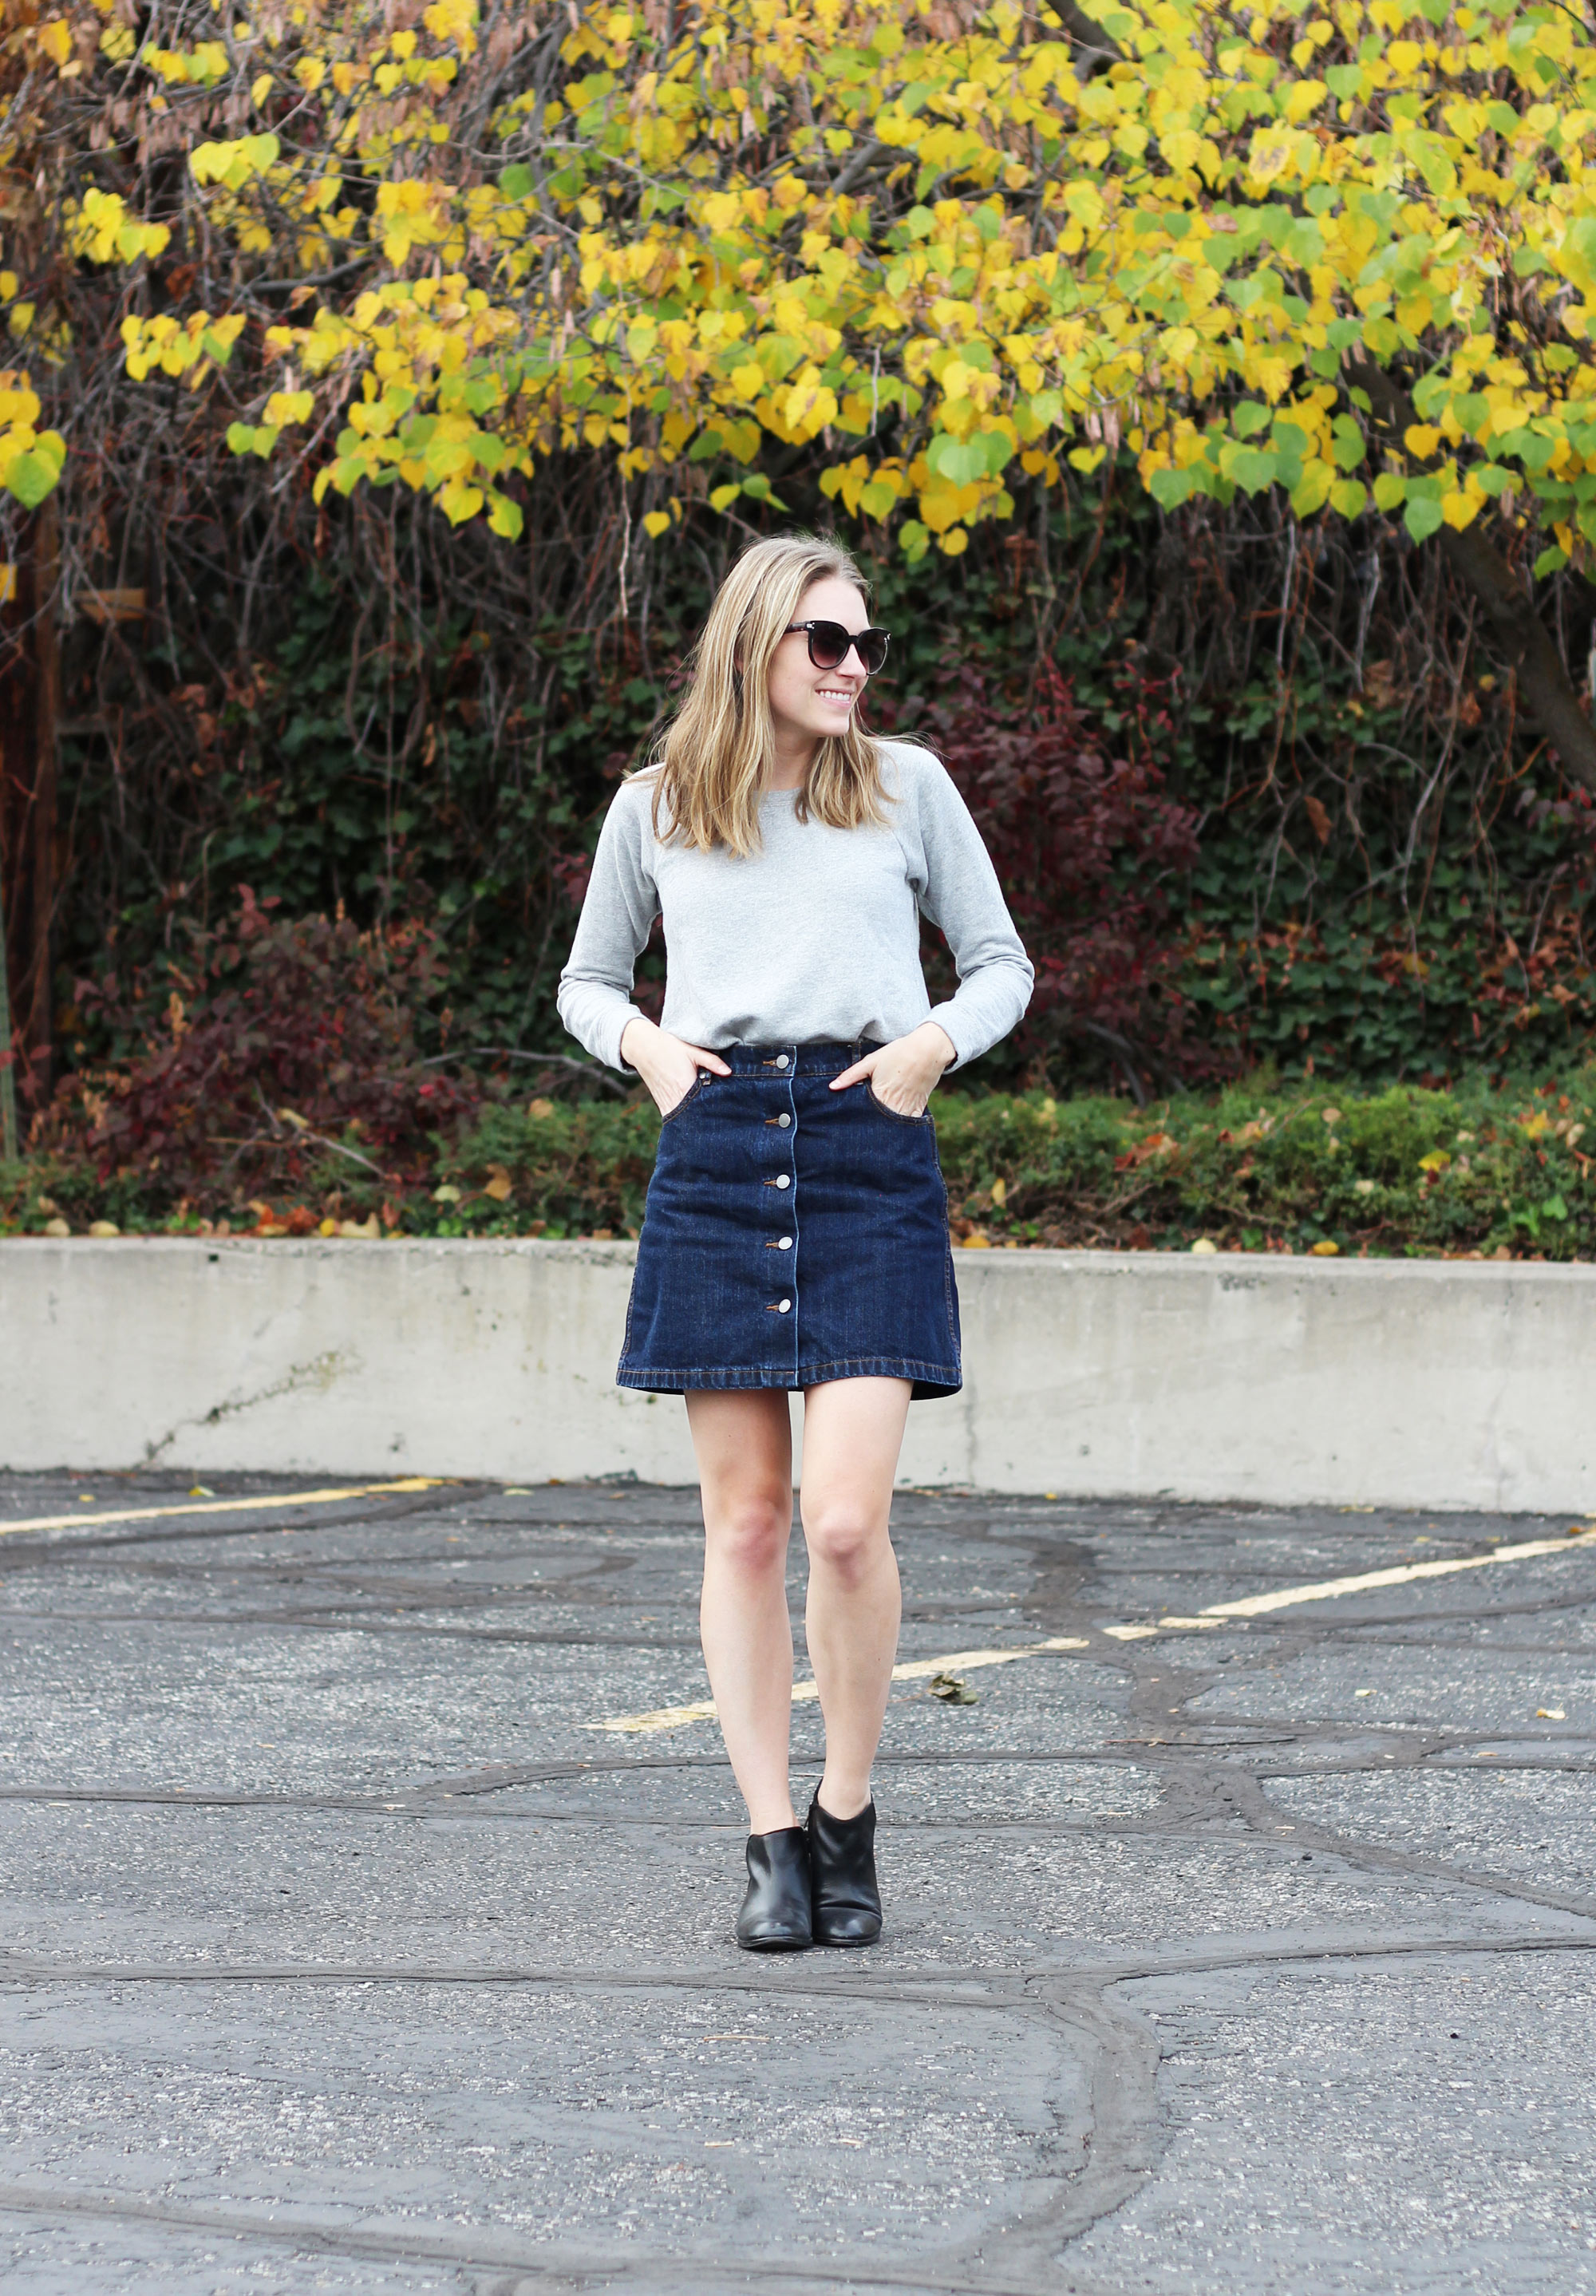 Denim skirt outfit with grey sweatshirt and black ankle boots — Cotton Cashmere Cat Hair